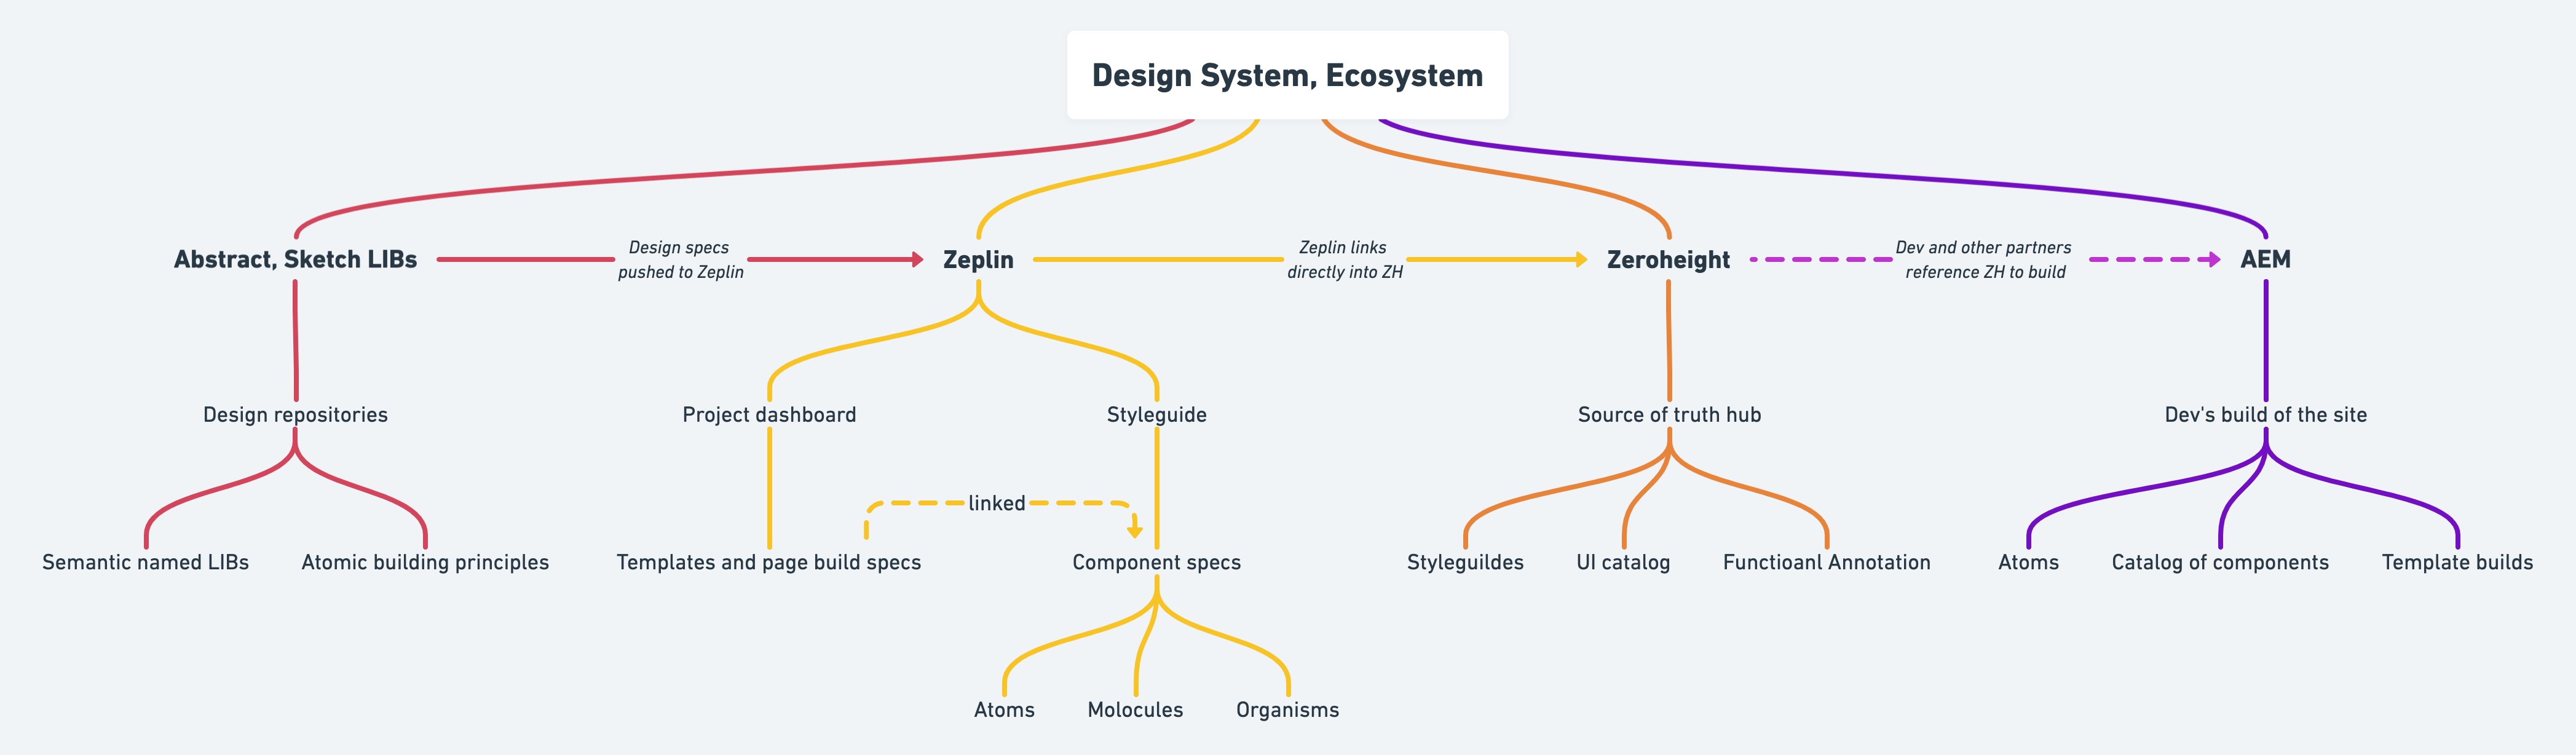 Design system diagram